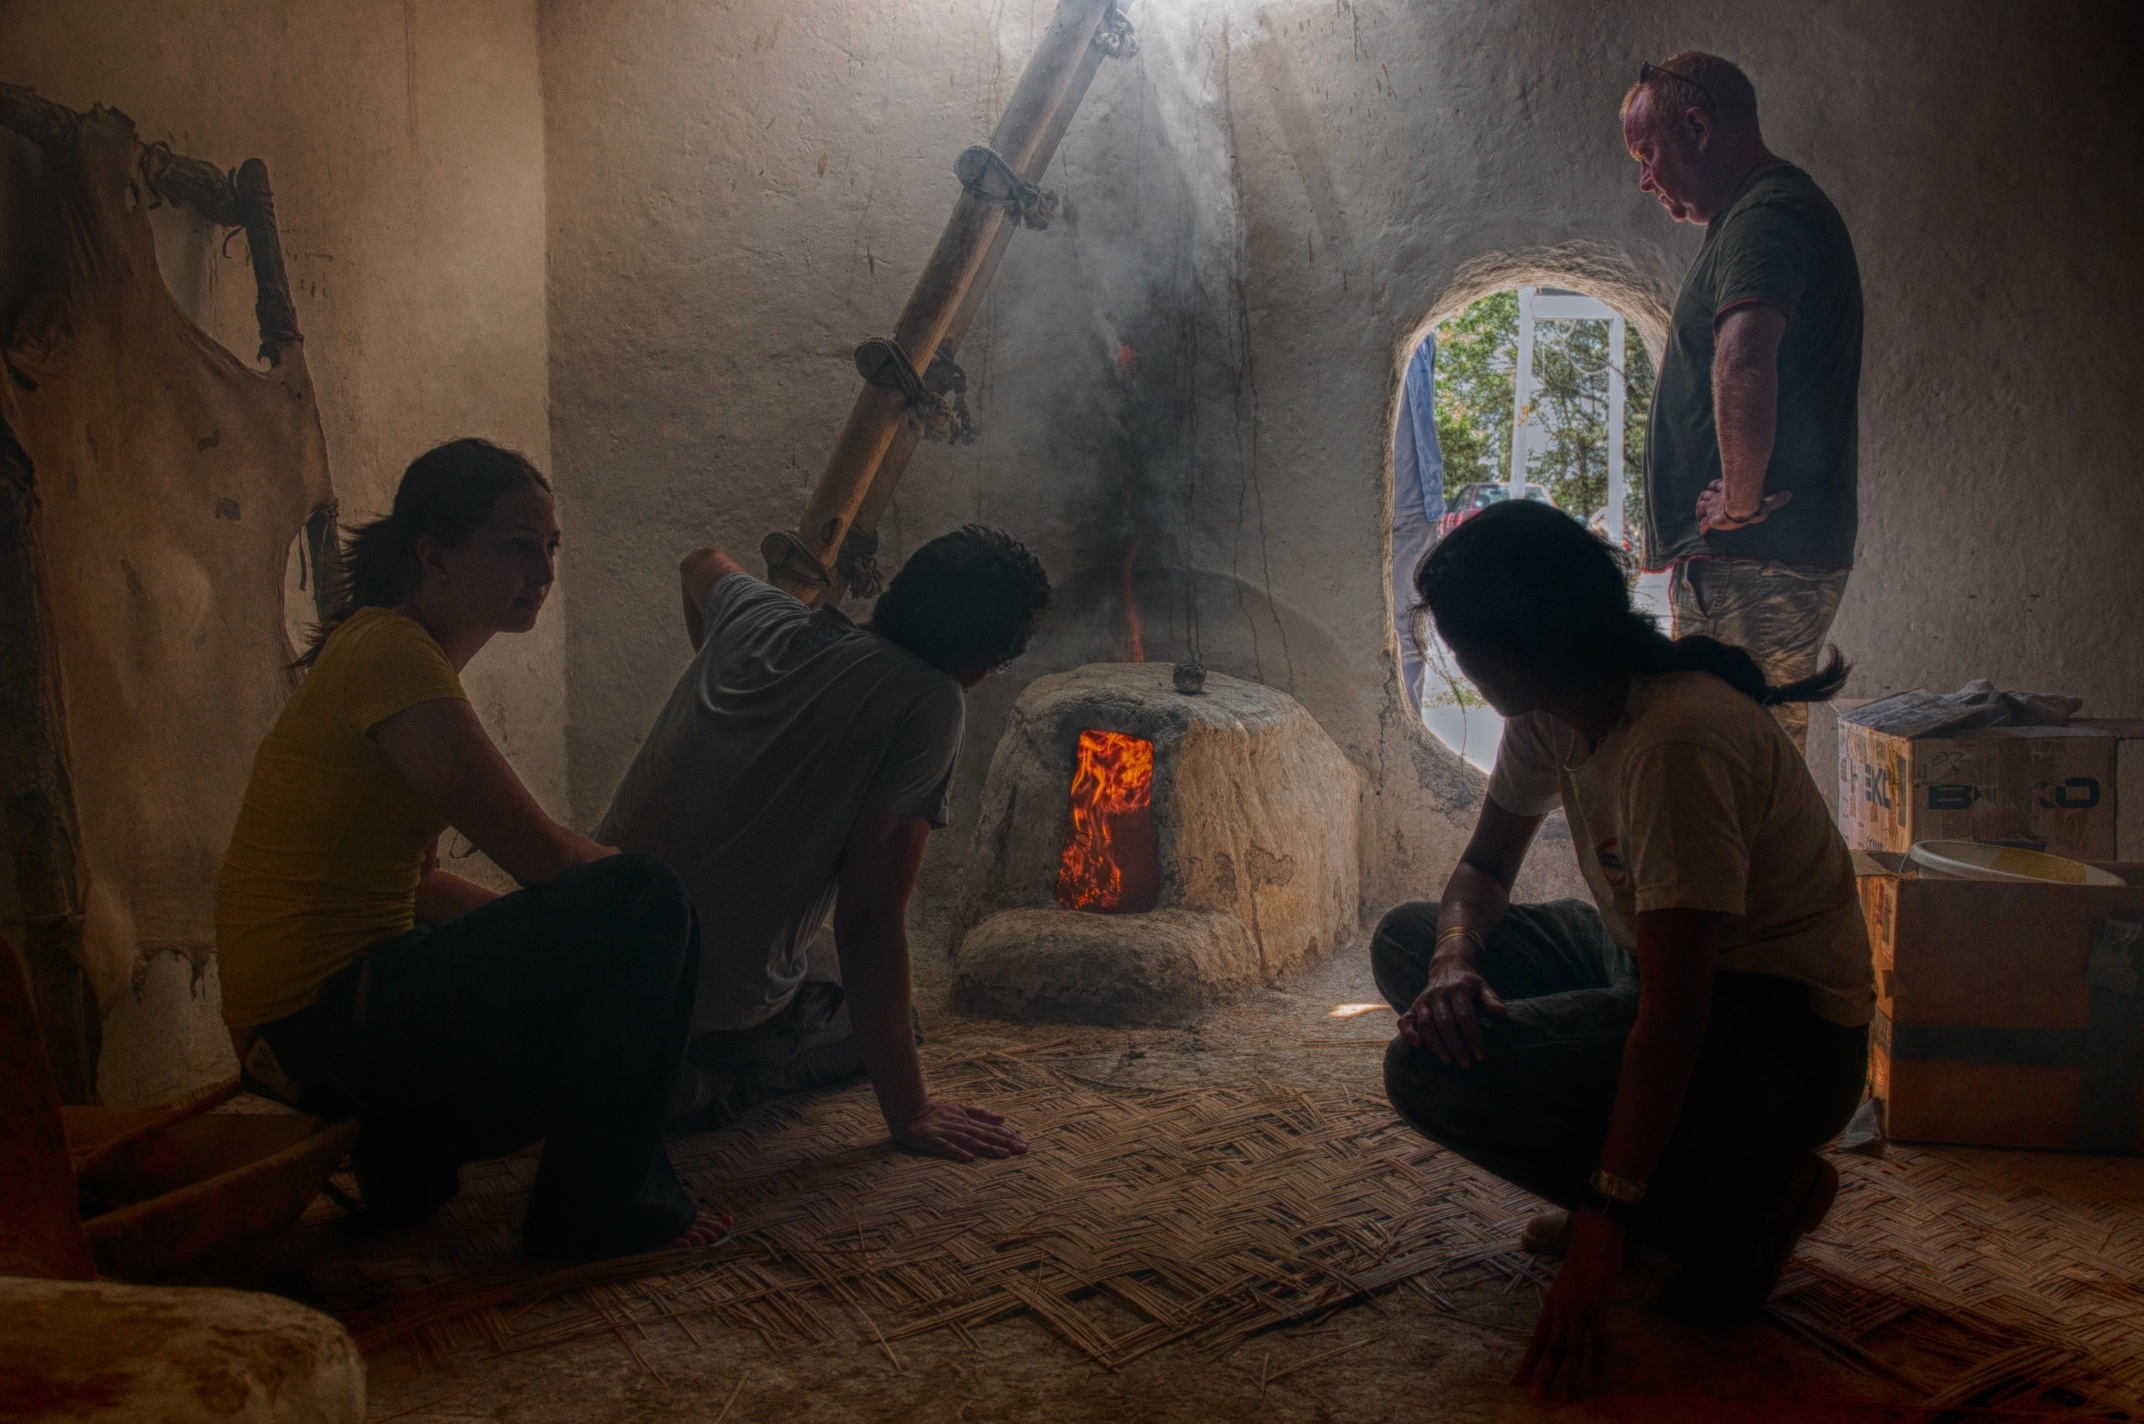 Testing Neolithic oven fire and smoke conditions in the Experimental House at Çatalhöyük, Turkey.